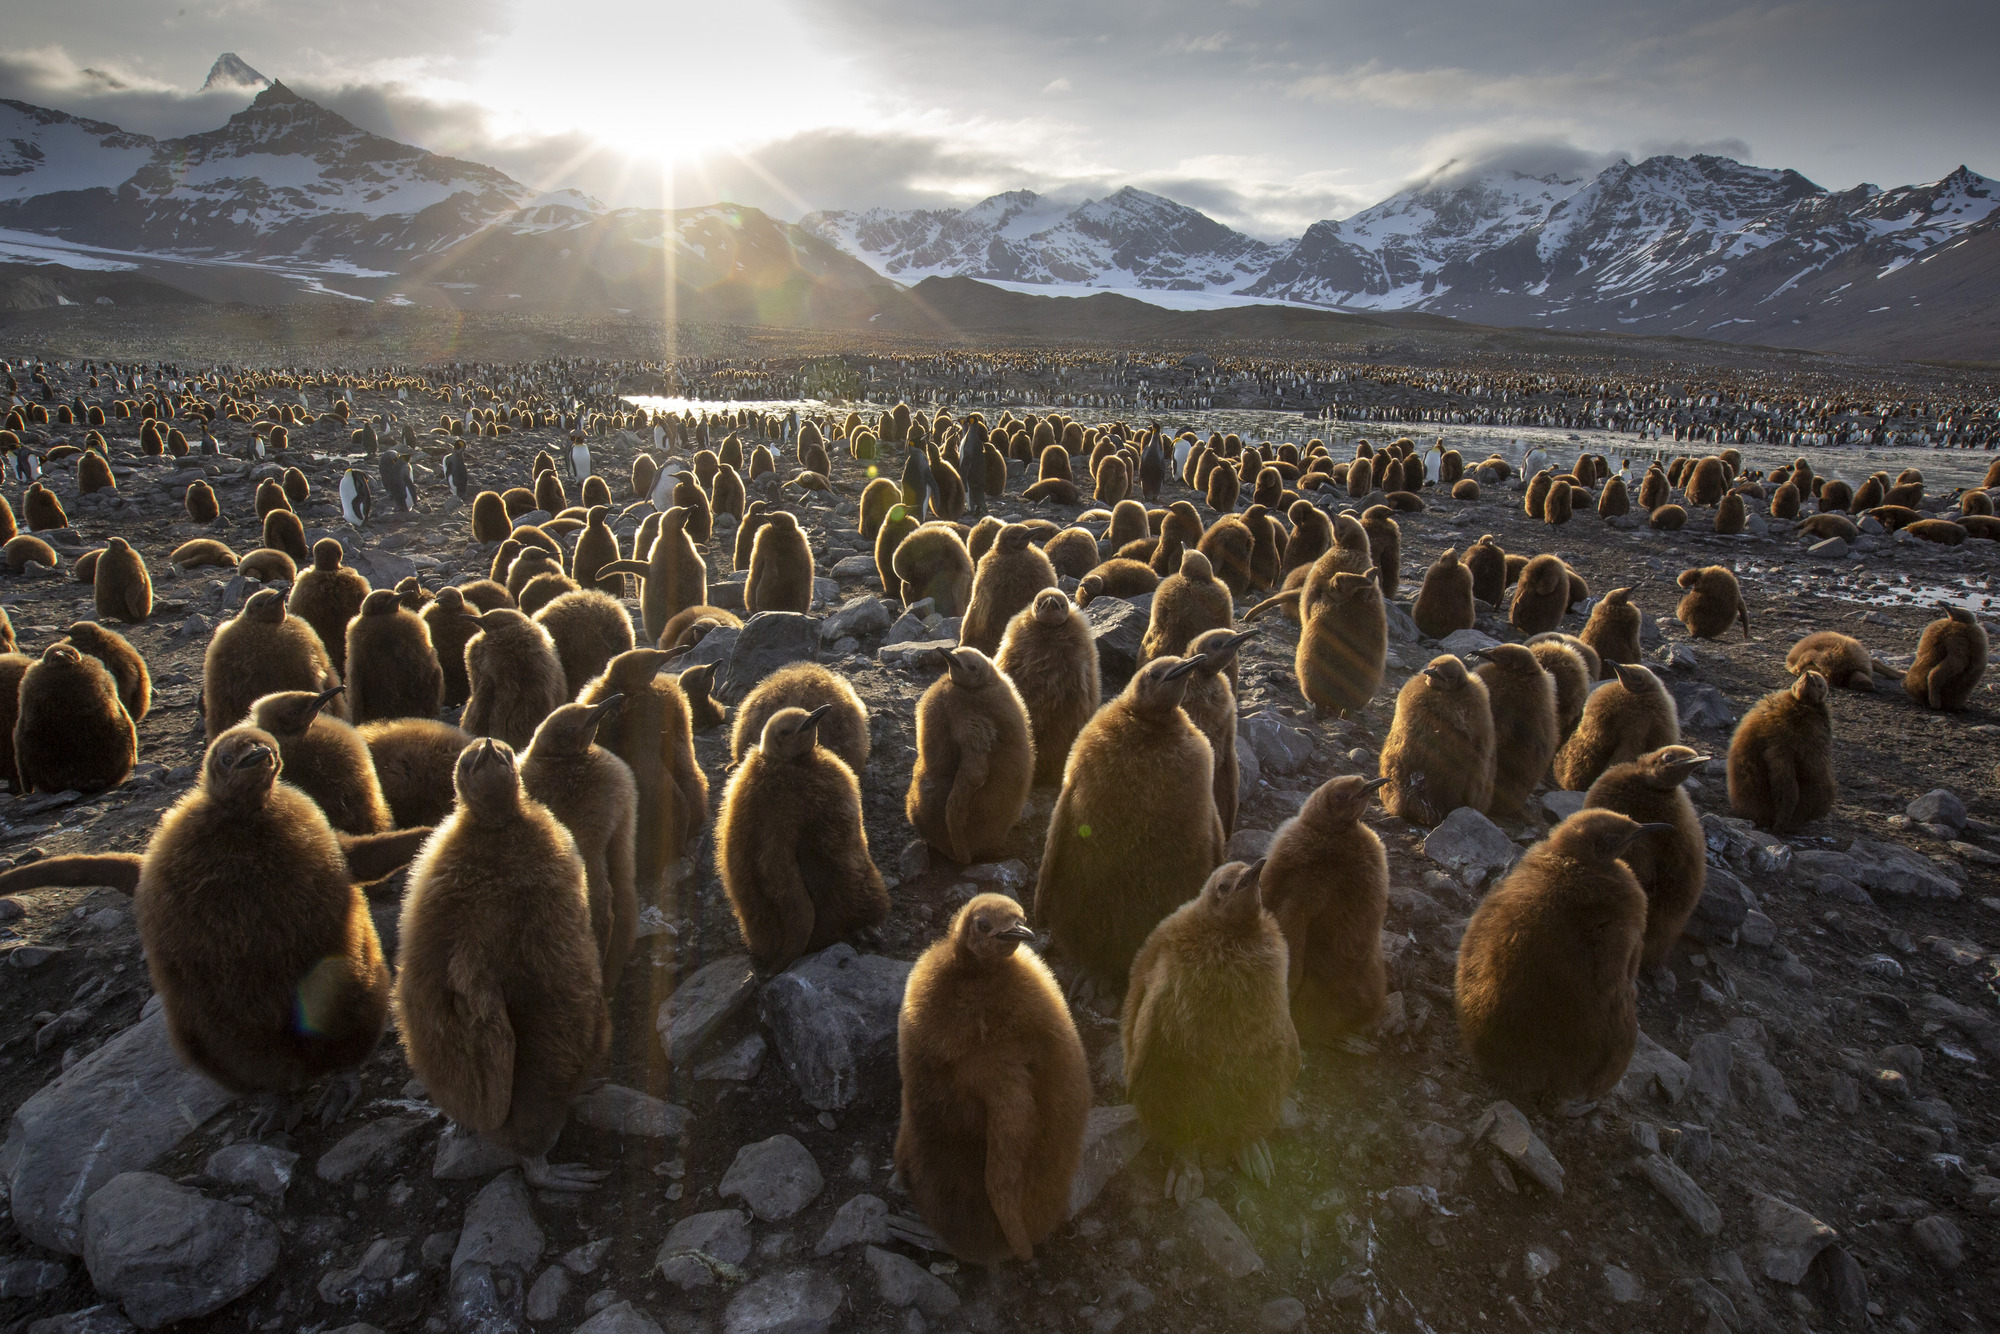 A colony of young penguin chicks wait for their parents to return with food in Seven Worlds, One Planet